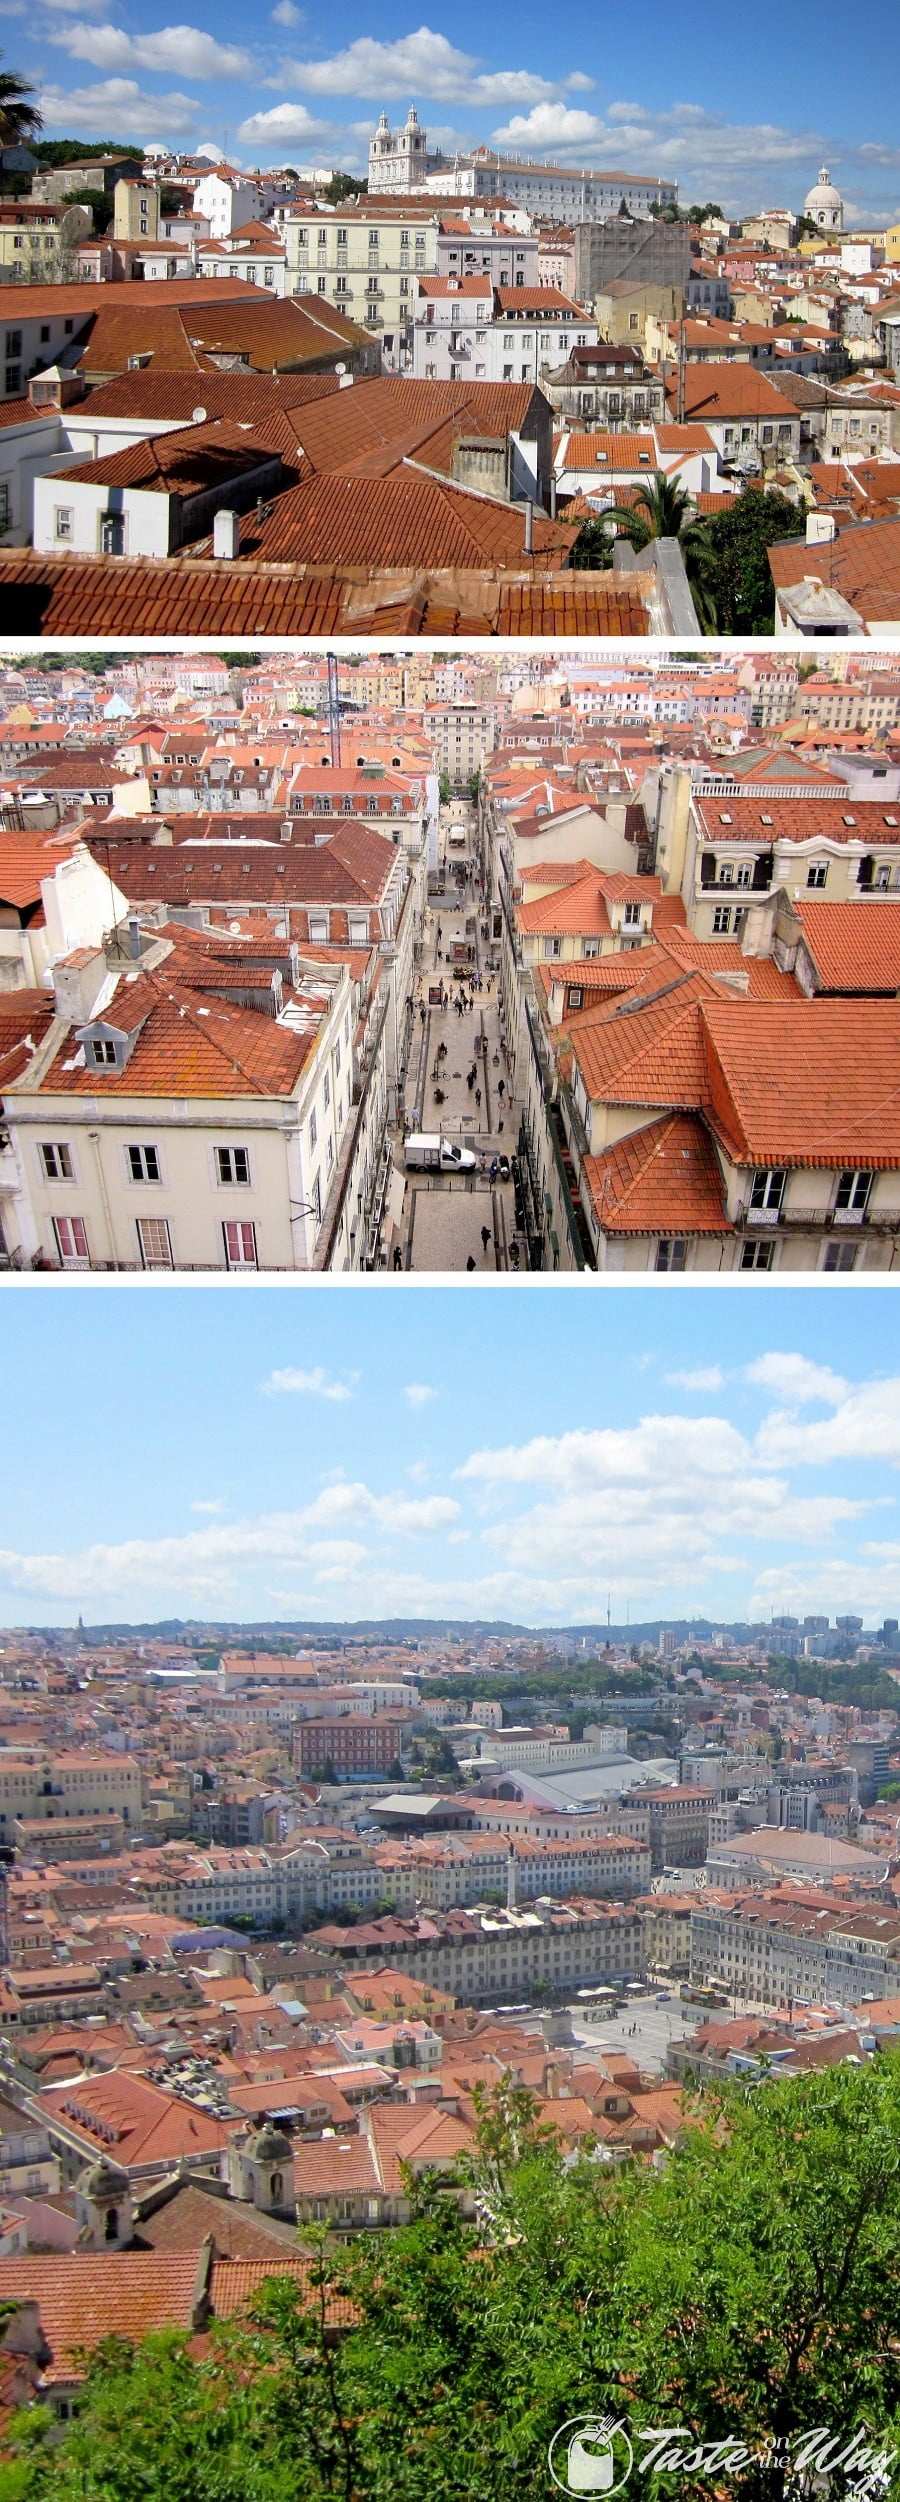 Top 15+ Best Things to Do in Lisbon, Portugal - One of the top fun #thingstodo in #Lisbon, #Portugal is to find a good free spot to enjoy the views of rooftops. Check out for more! #travel #photography @tasteontheway